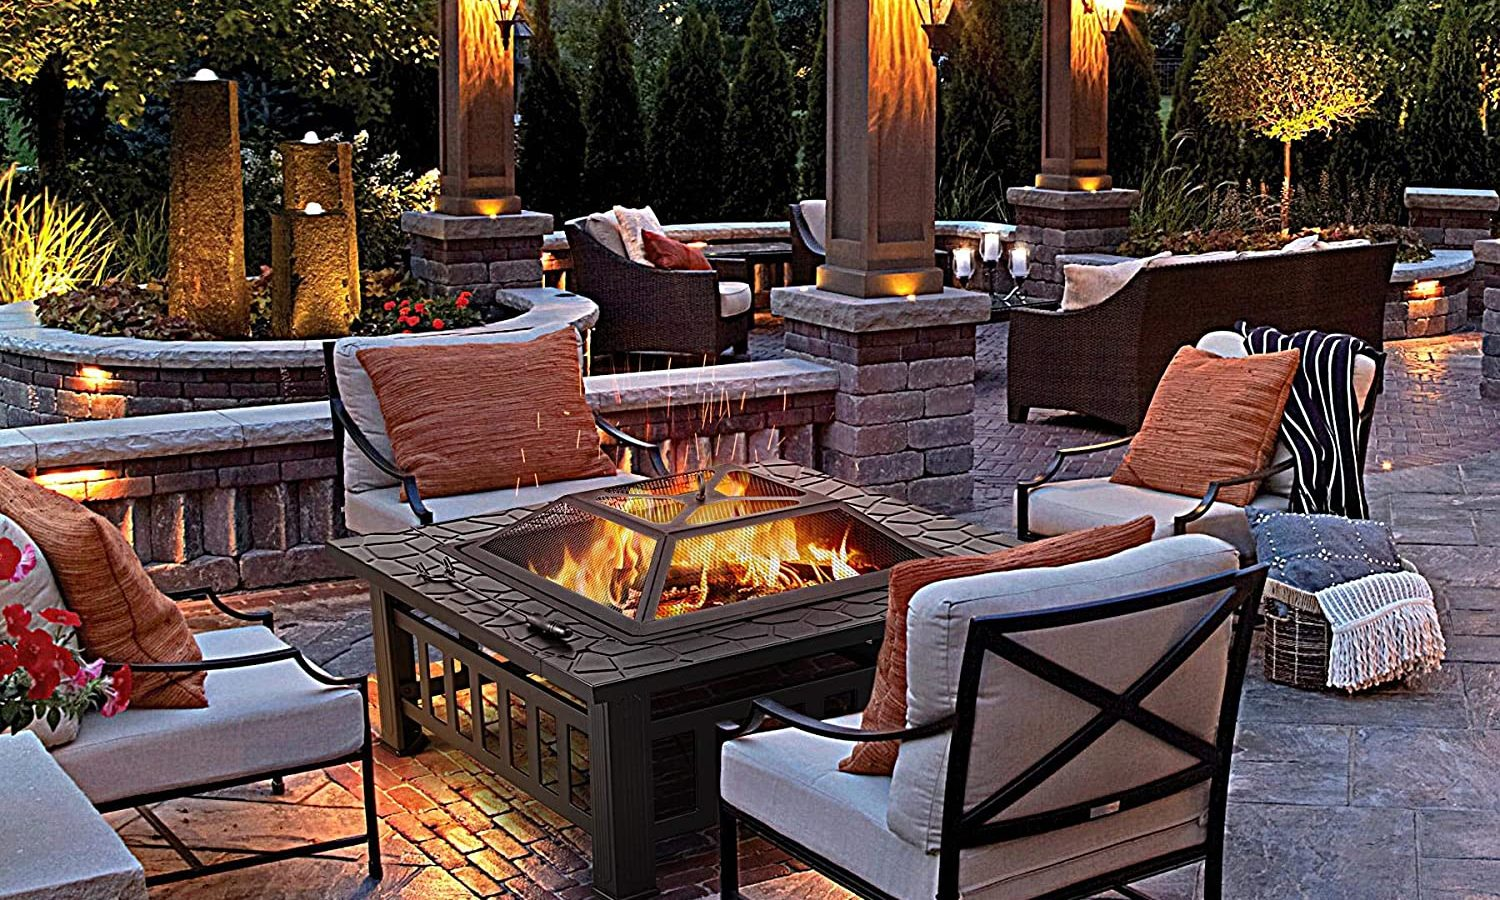 Yaheetech 32in Outdoor Metal Wood Burning Firepit Square Table Lifestyle